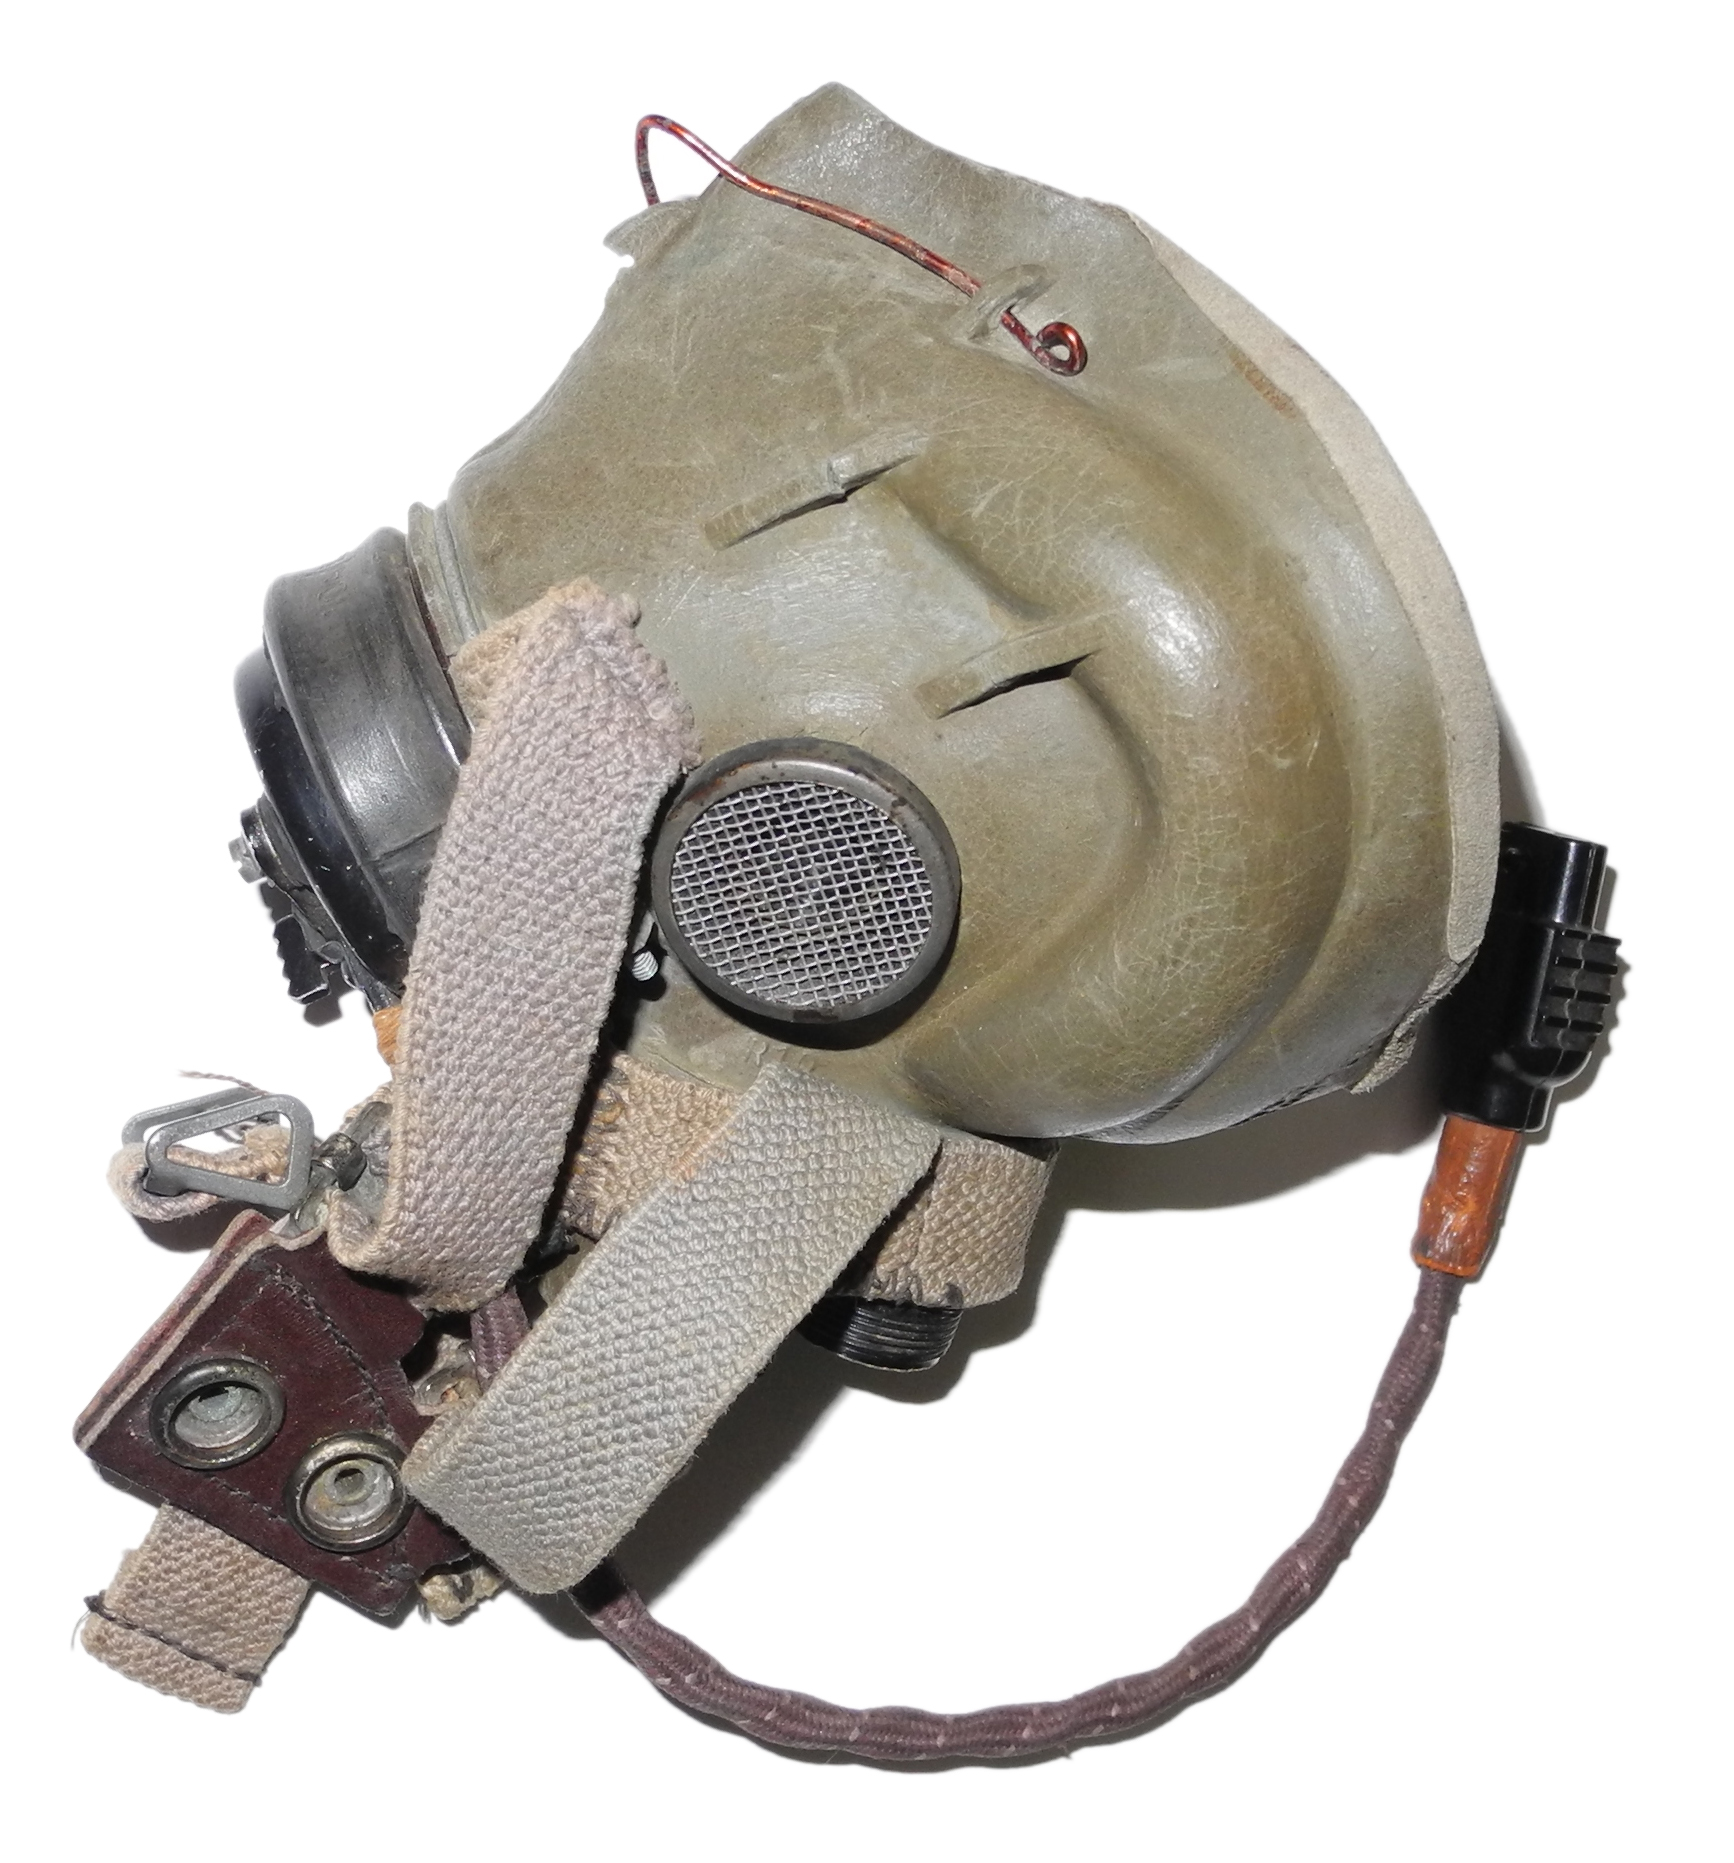 RAF Type G oxygen mask needs work